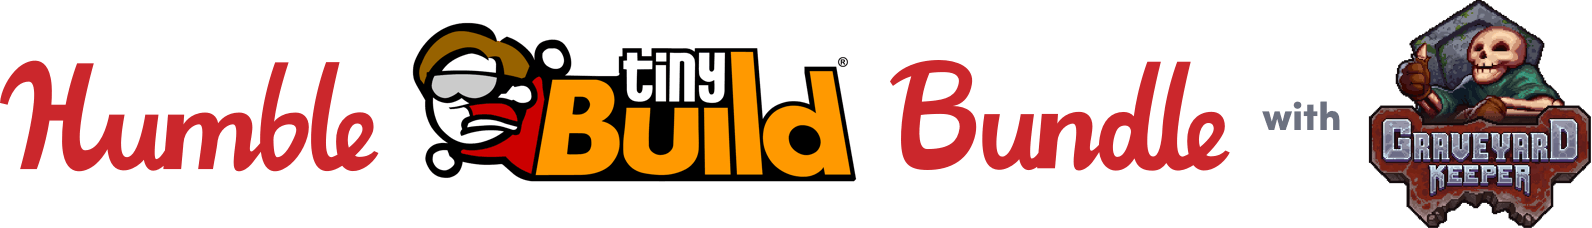 Humble tinyBuild Bundle with Graveyard Keeper